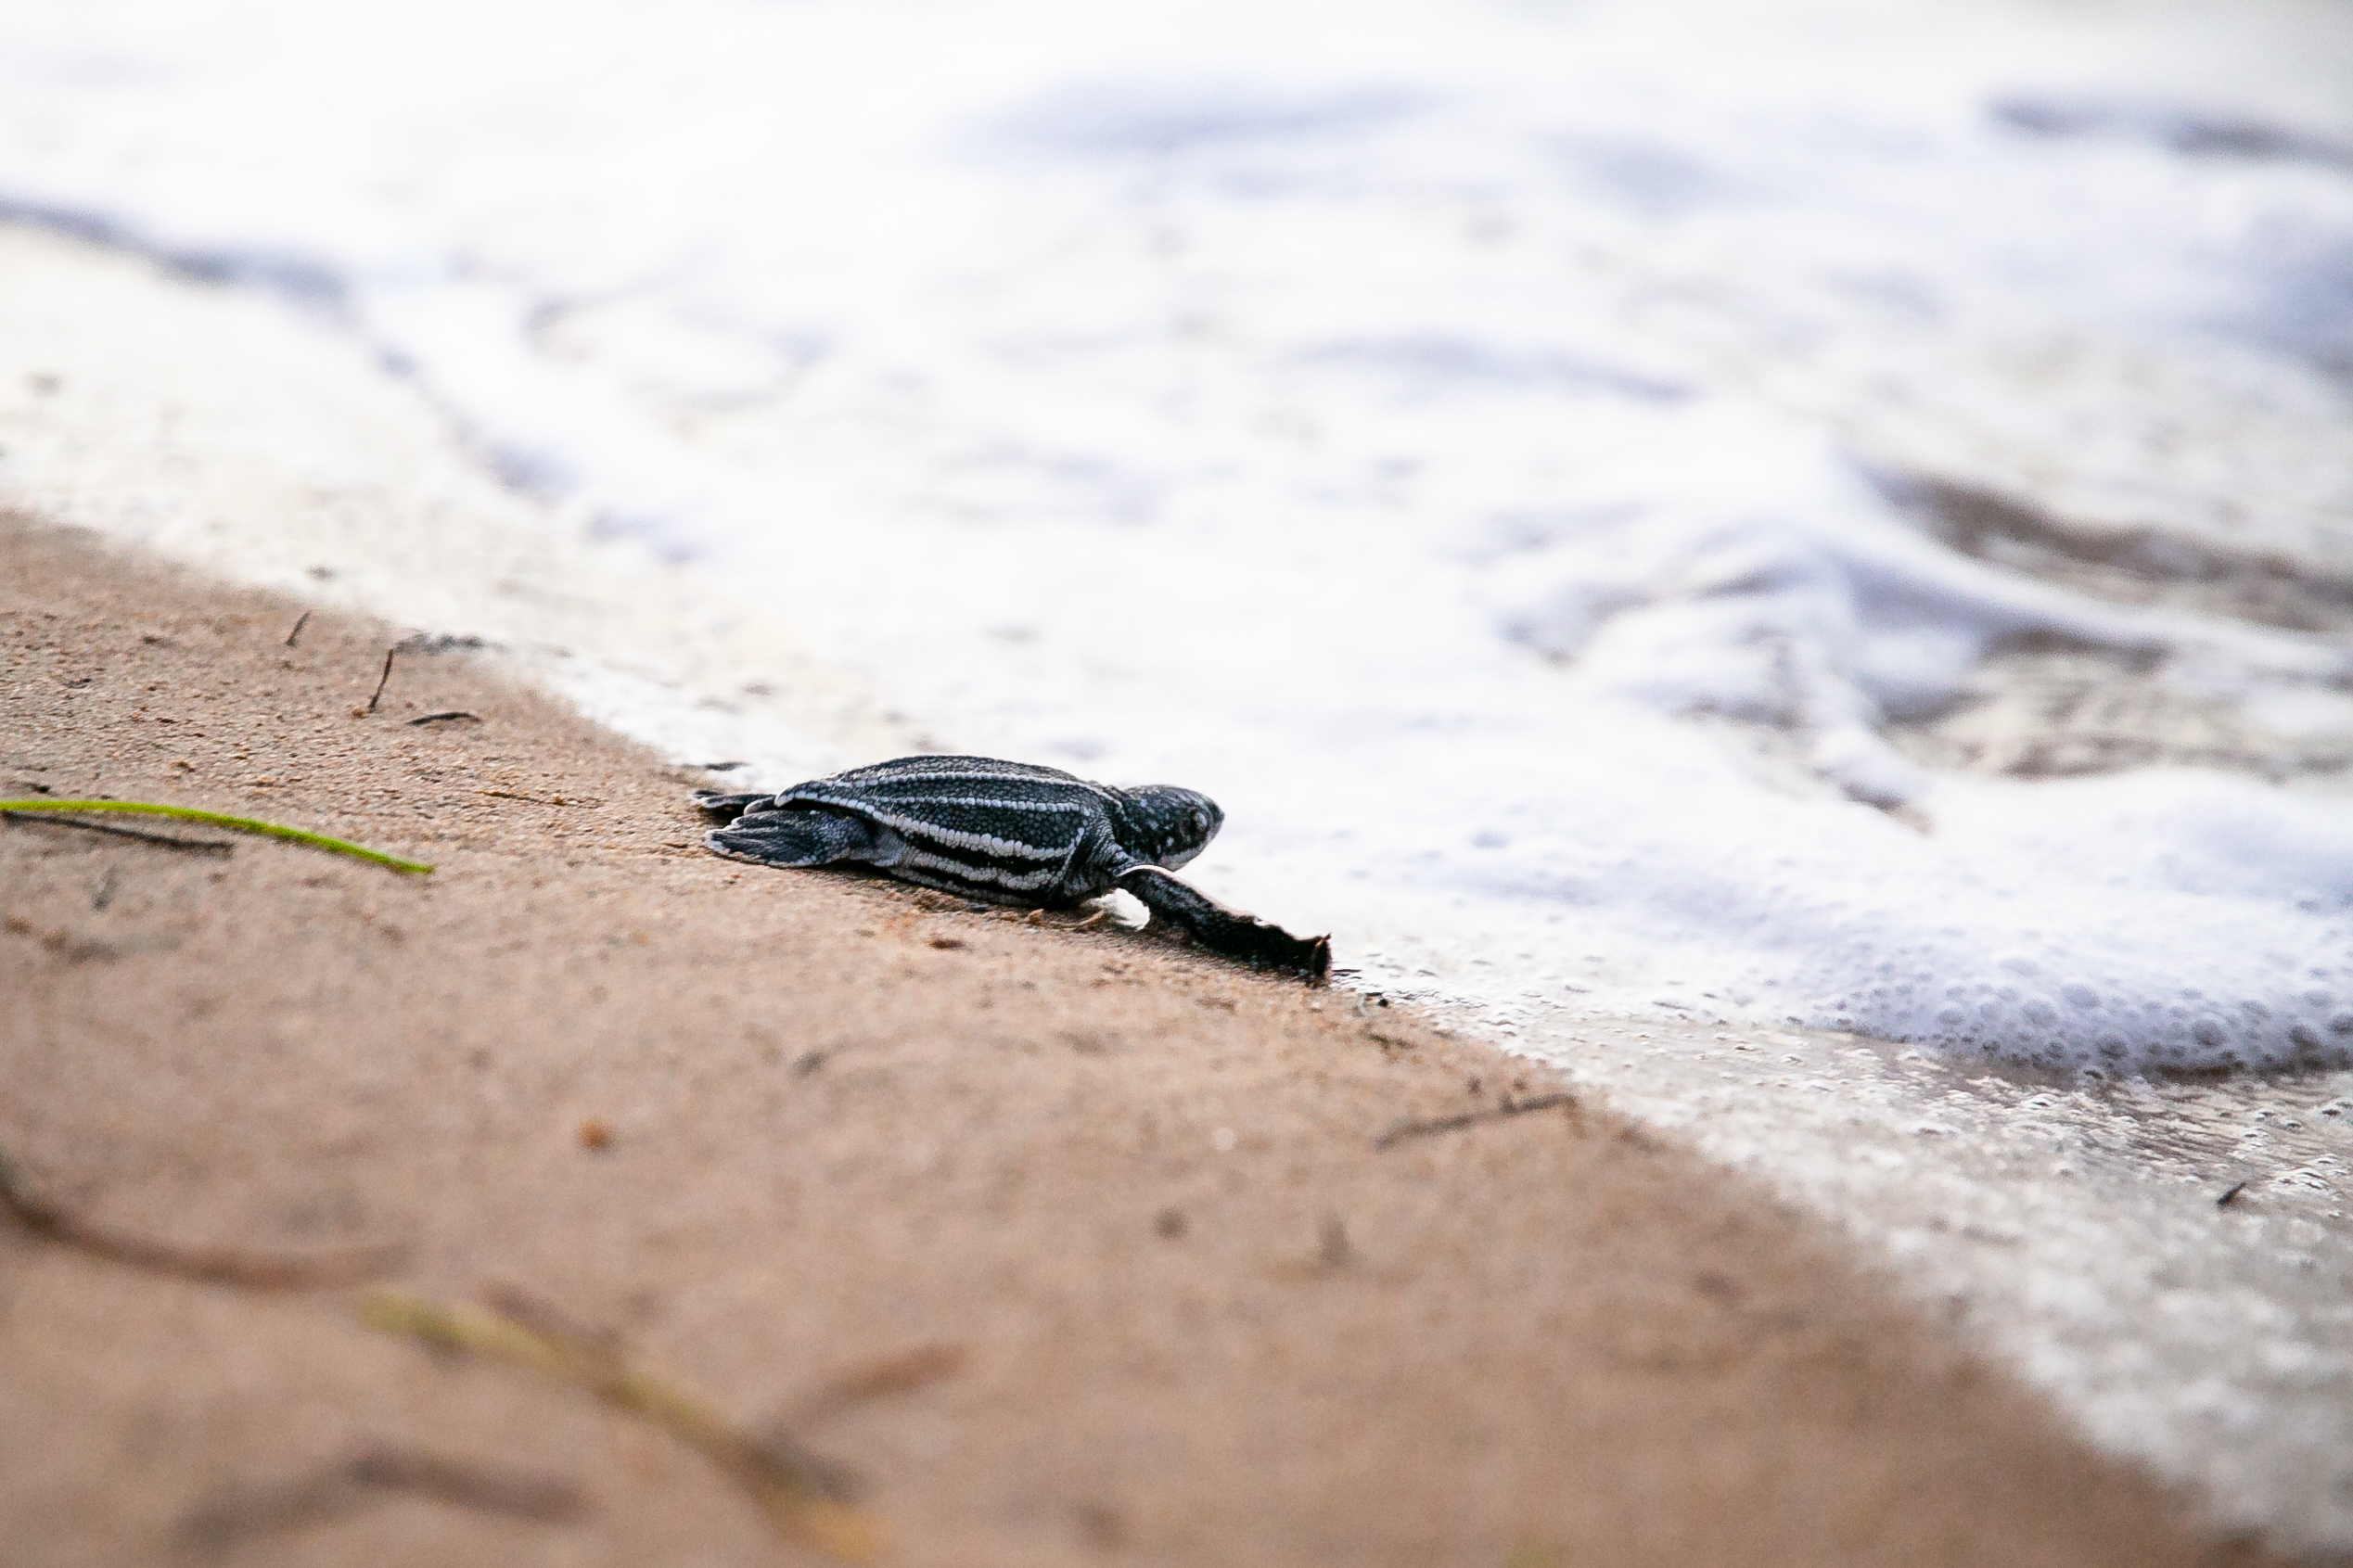 A leatherback turtle on the beach.